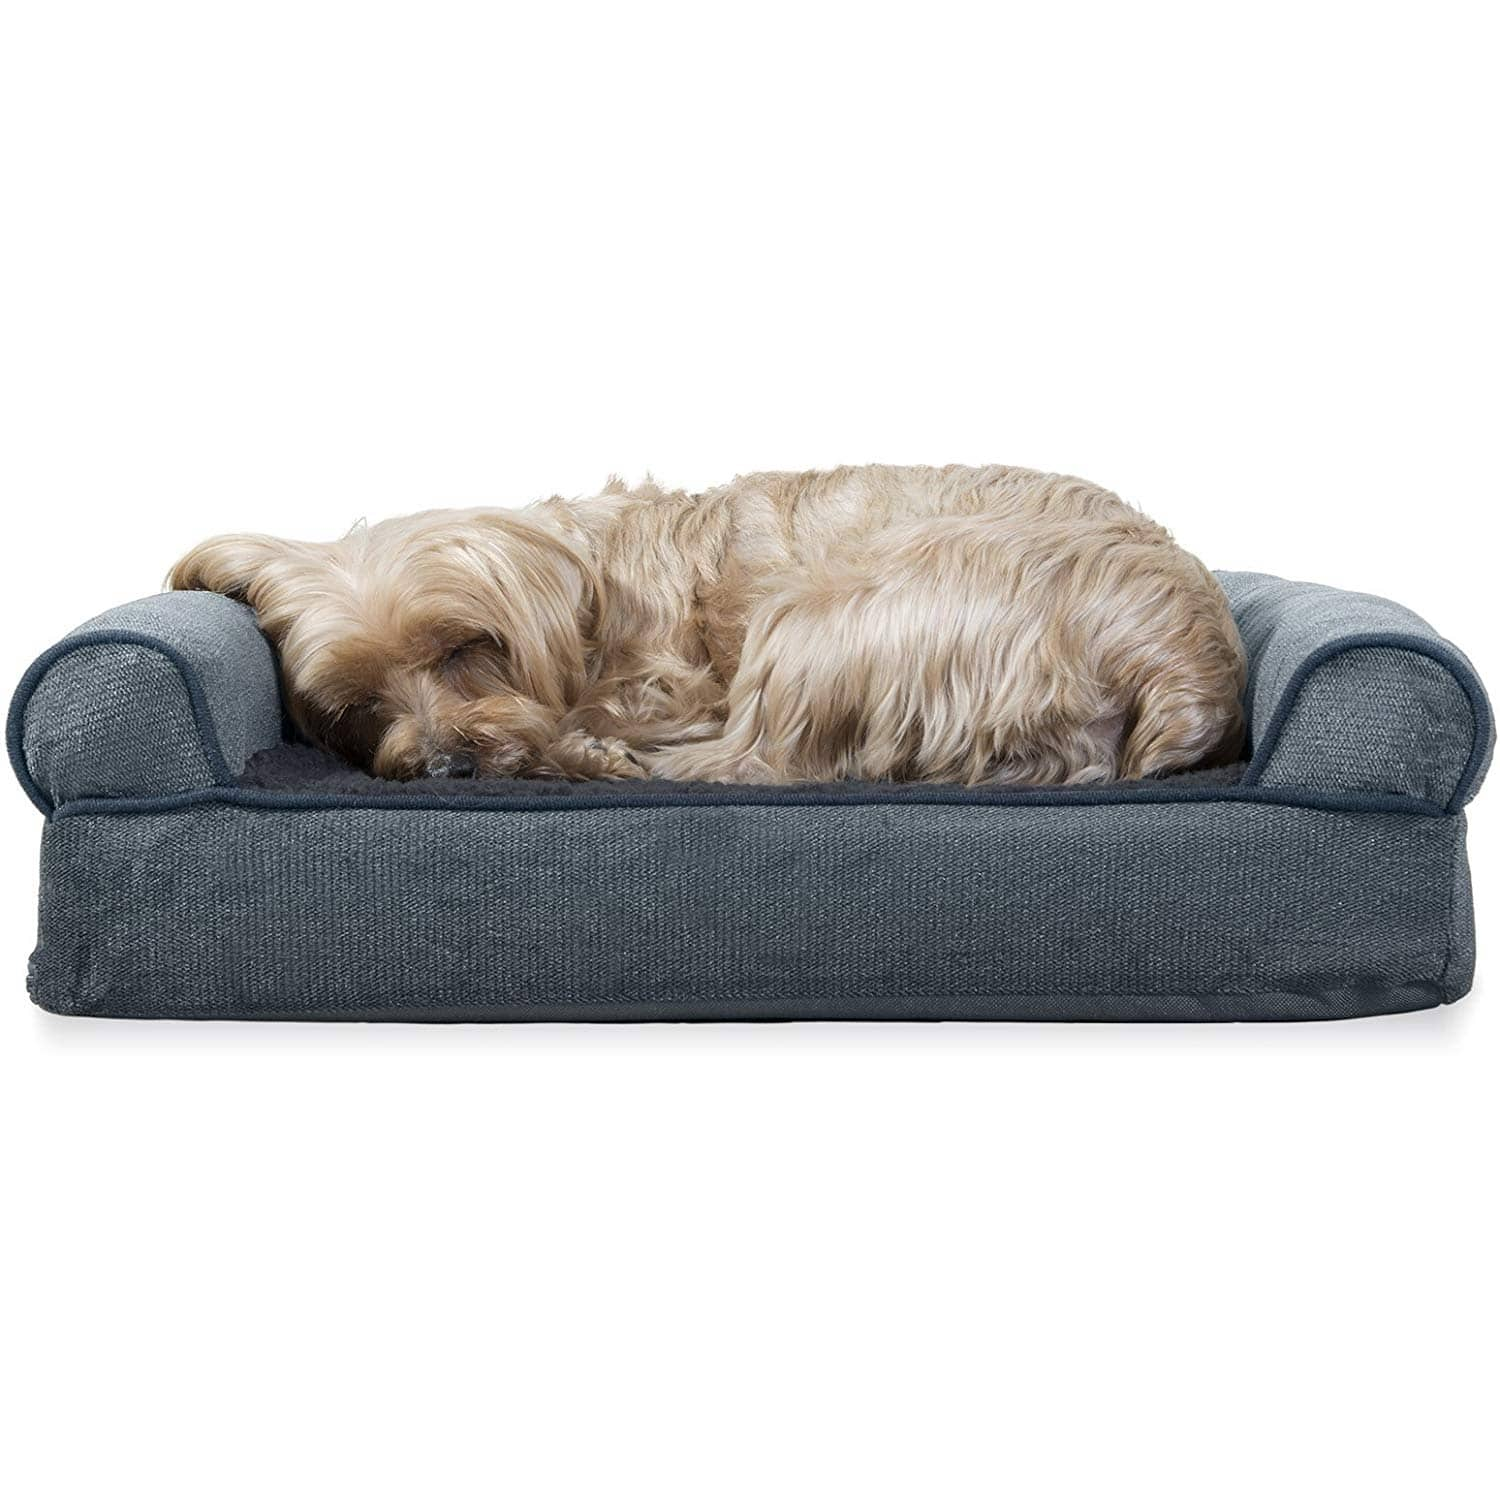 Furhaven Pet Dog Bed: Sofa-Style Living Room Couch Orthopedic Pet Bed for Dogs & Cats Small $12.99 FS w/ Prime